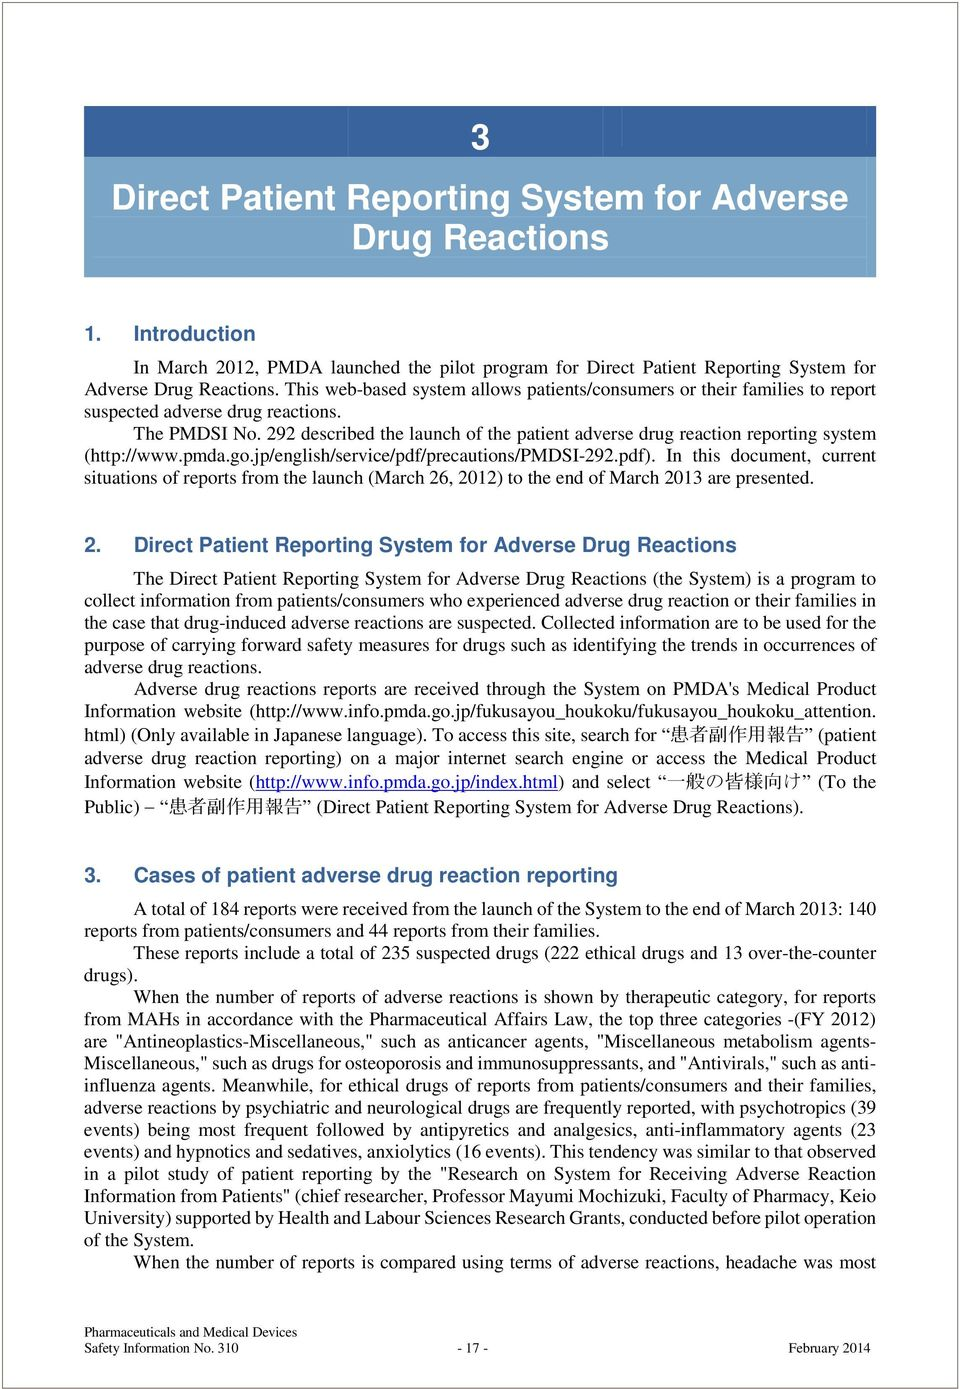 292 described the launch of the patient adverse drug reaction reporting system (http://www.pmda.go.jp/english/service/pdf/precautions/pmdsi-292.pdf).